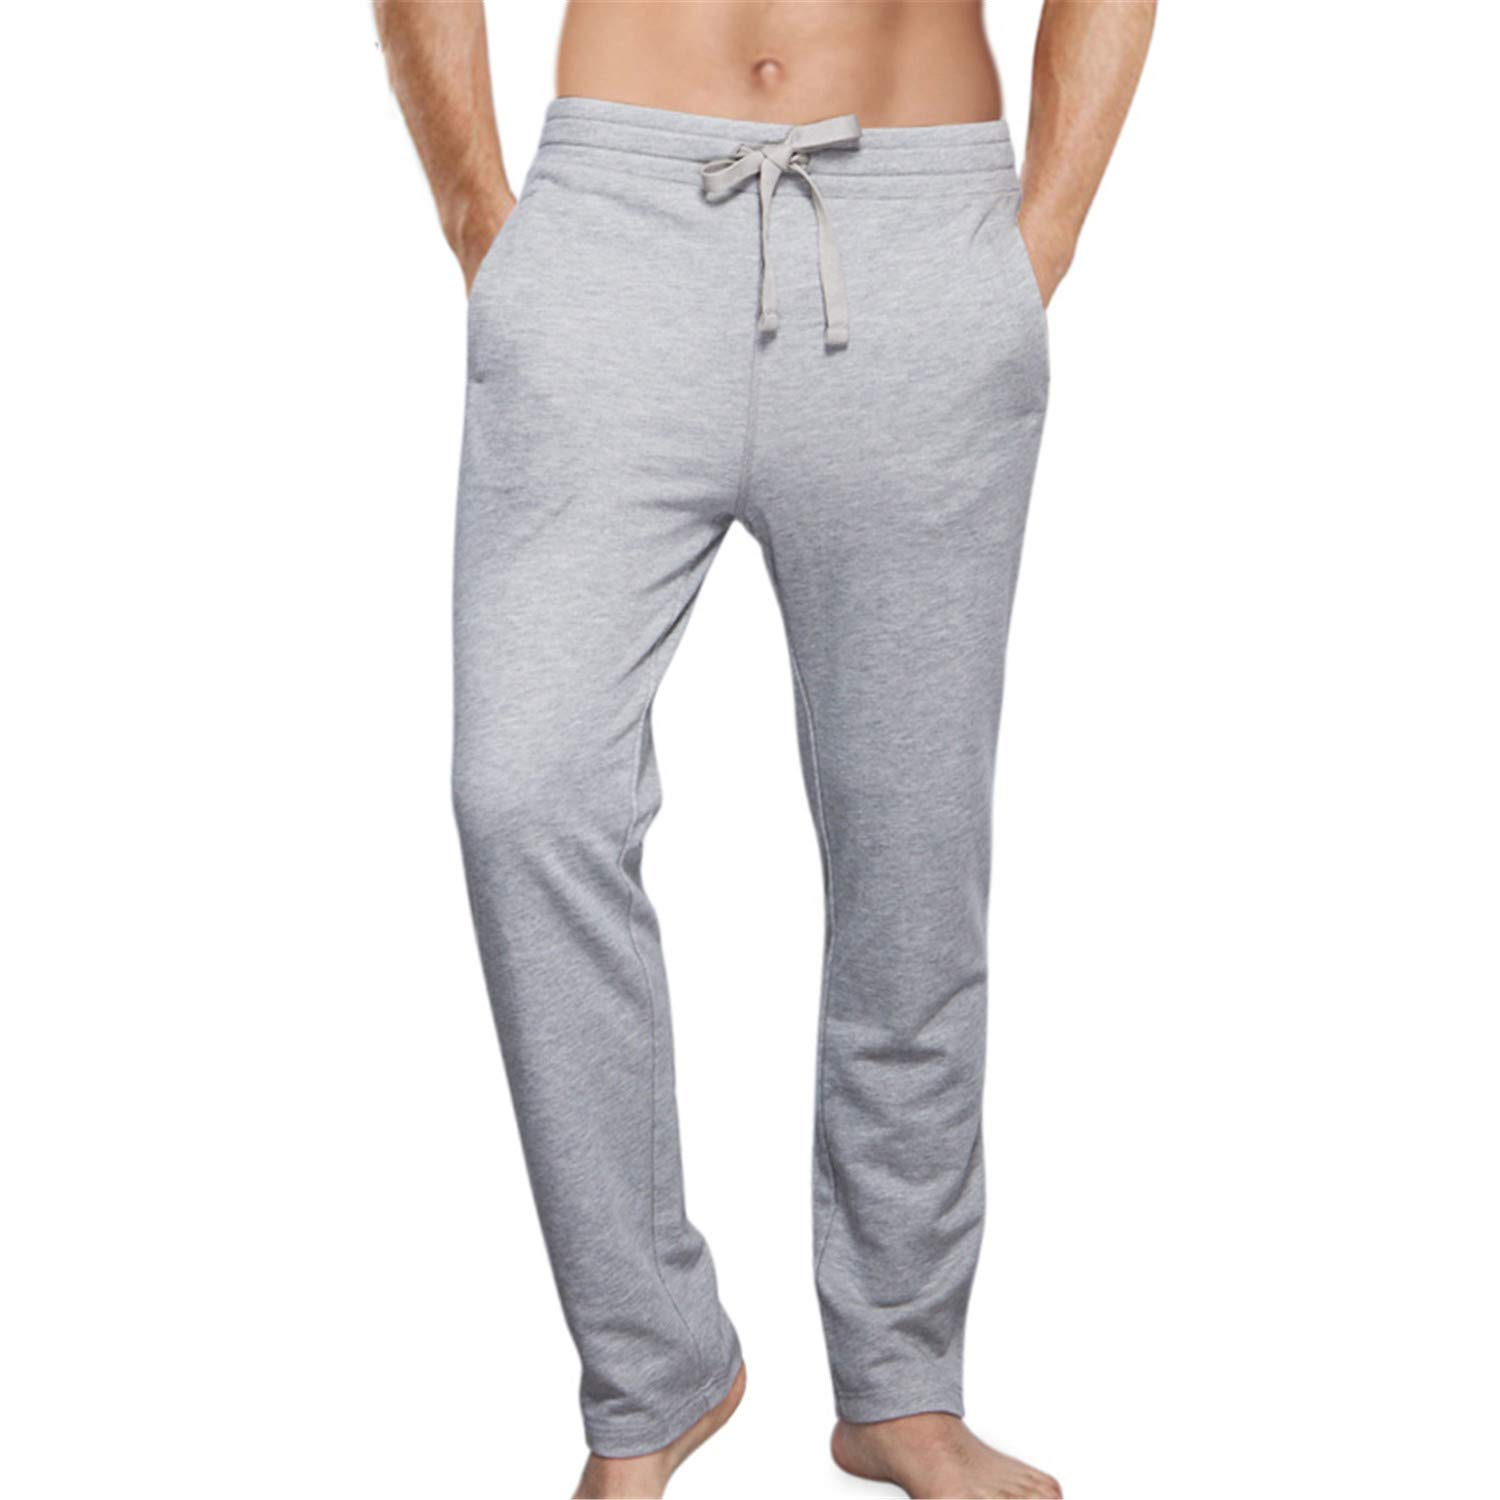 Mens Cotton Sleep Bottoms Pajamas Lounge Pants Pantalon ...